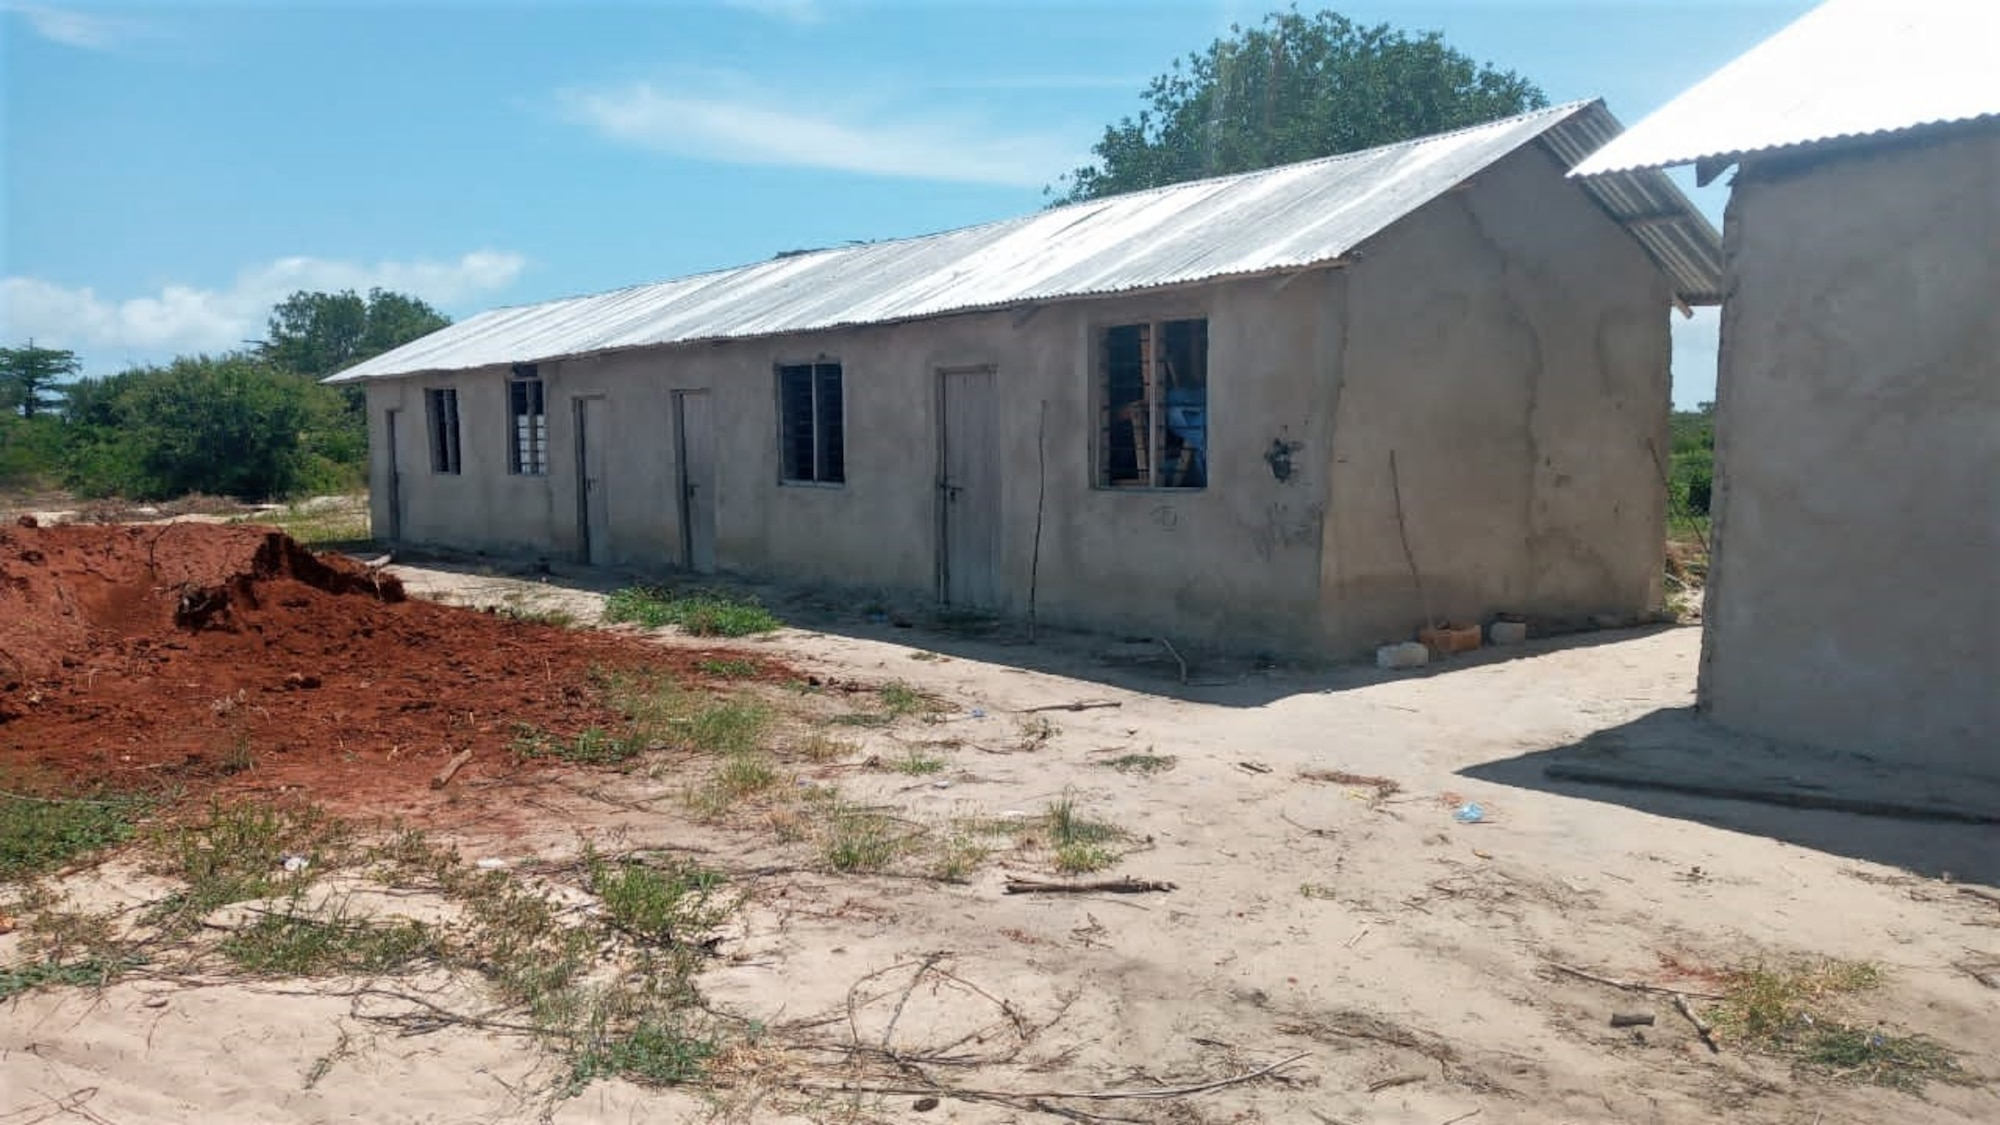 The newly completed primary school in Magogoni Village awaits the welcome of more than 120 students through the doors in Lamu, Kenya, Jan. 9, 2021.